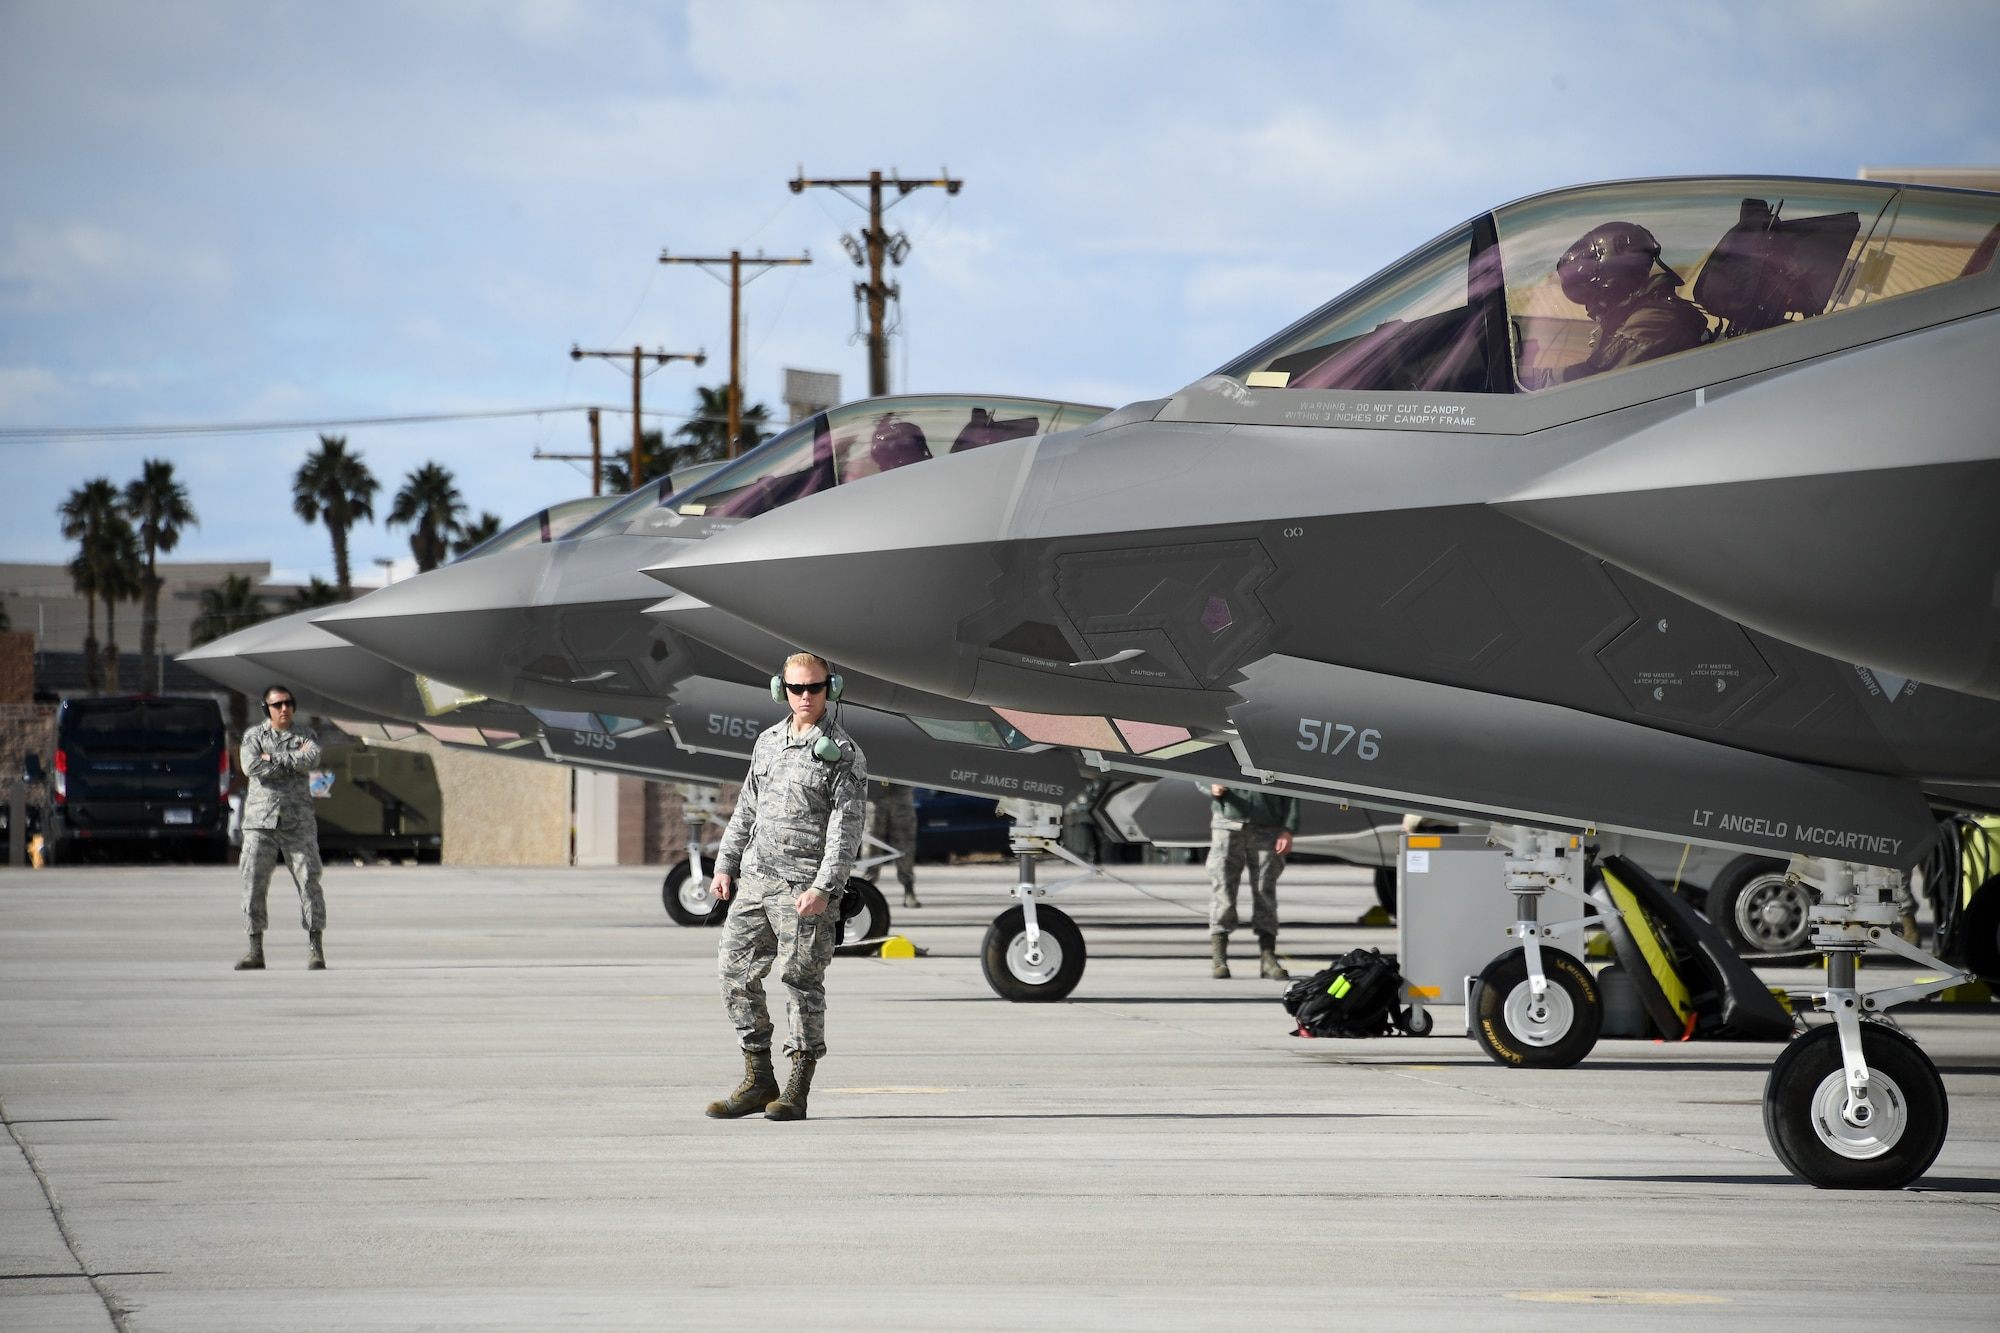 Crew chiefs assigned to the 4th Aircraft Maintenance Unit prepare to launch F-35A Lightning II fighter jets during Red Flag 19-1, Nelllis Air Force Base, Nev., Feb. 6, 2019. Pilots and maintainers from the 388th Fighter Wing's 4th Fighter Squadron and 4th Aircraft Maintenance Unit are participating in Red Flag 19-1 at Nellis AFB, Nevada. This is the wing's second Red Flag with the F-35A, America's most advanced multi-role fighter, which brings game-changing stealth, lethality and interoperability to the modern battlefield. Red Flag is the Air Force's premier combat exercise and includes units from across the Air Force and allied nations. The 388th is the lead wing for Red Flag 19-1.(U.S. Air Force photo by R. Nial Bradshaw)